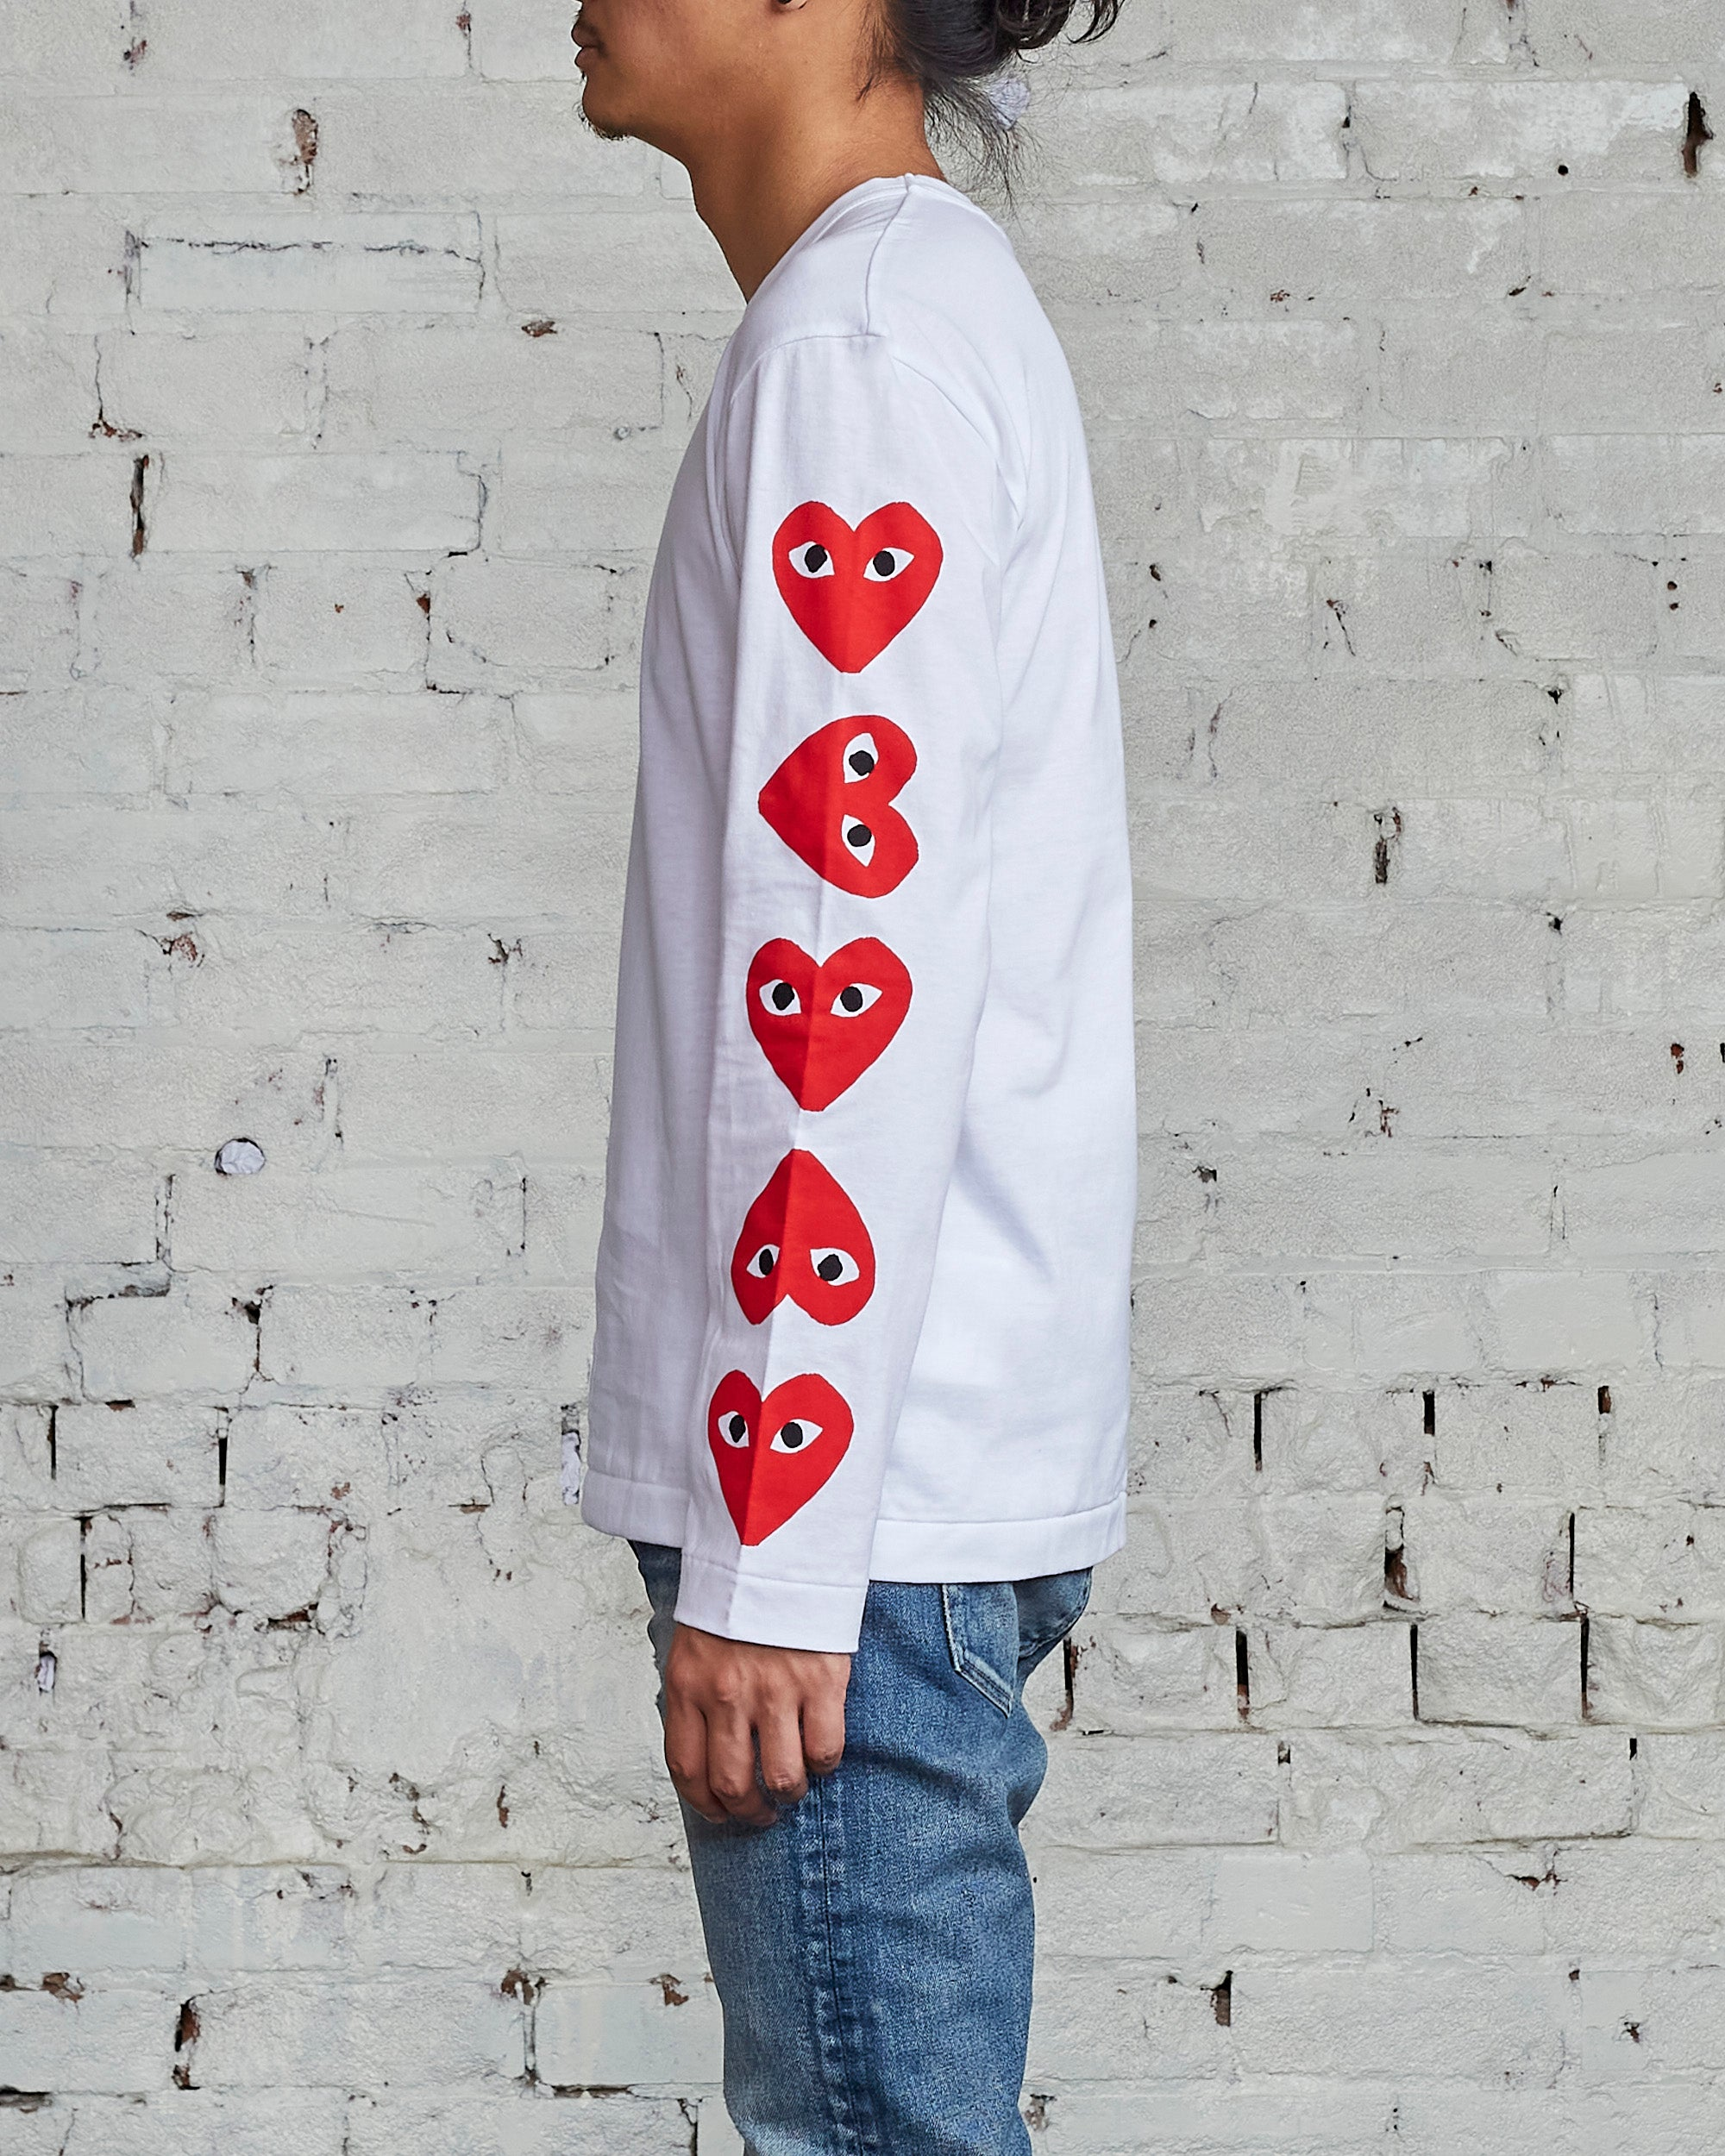 Comme des Garçons PLAY Multi Red Heart Long Sleeve T-Shirt White